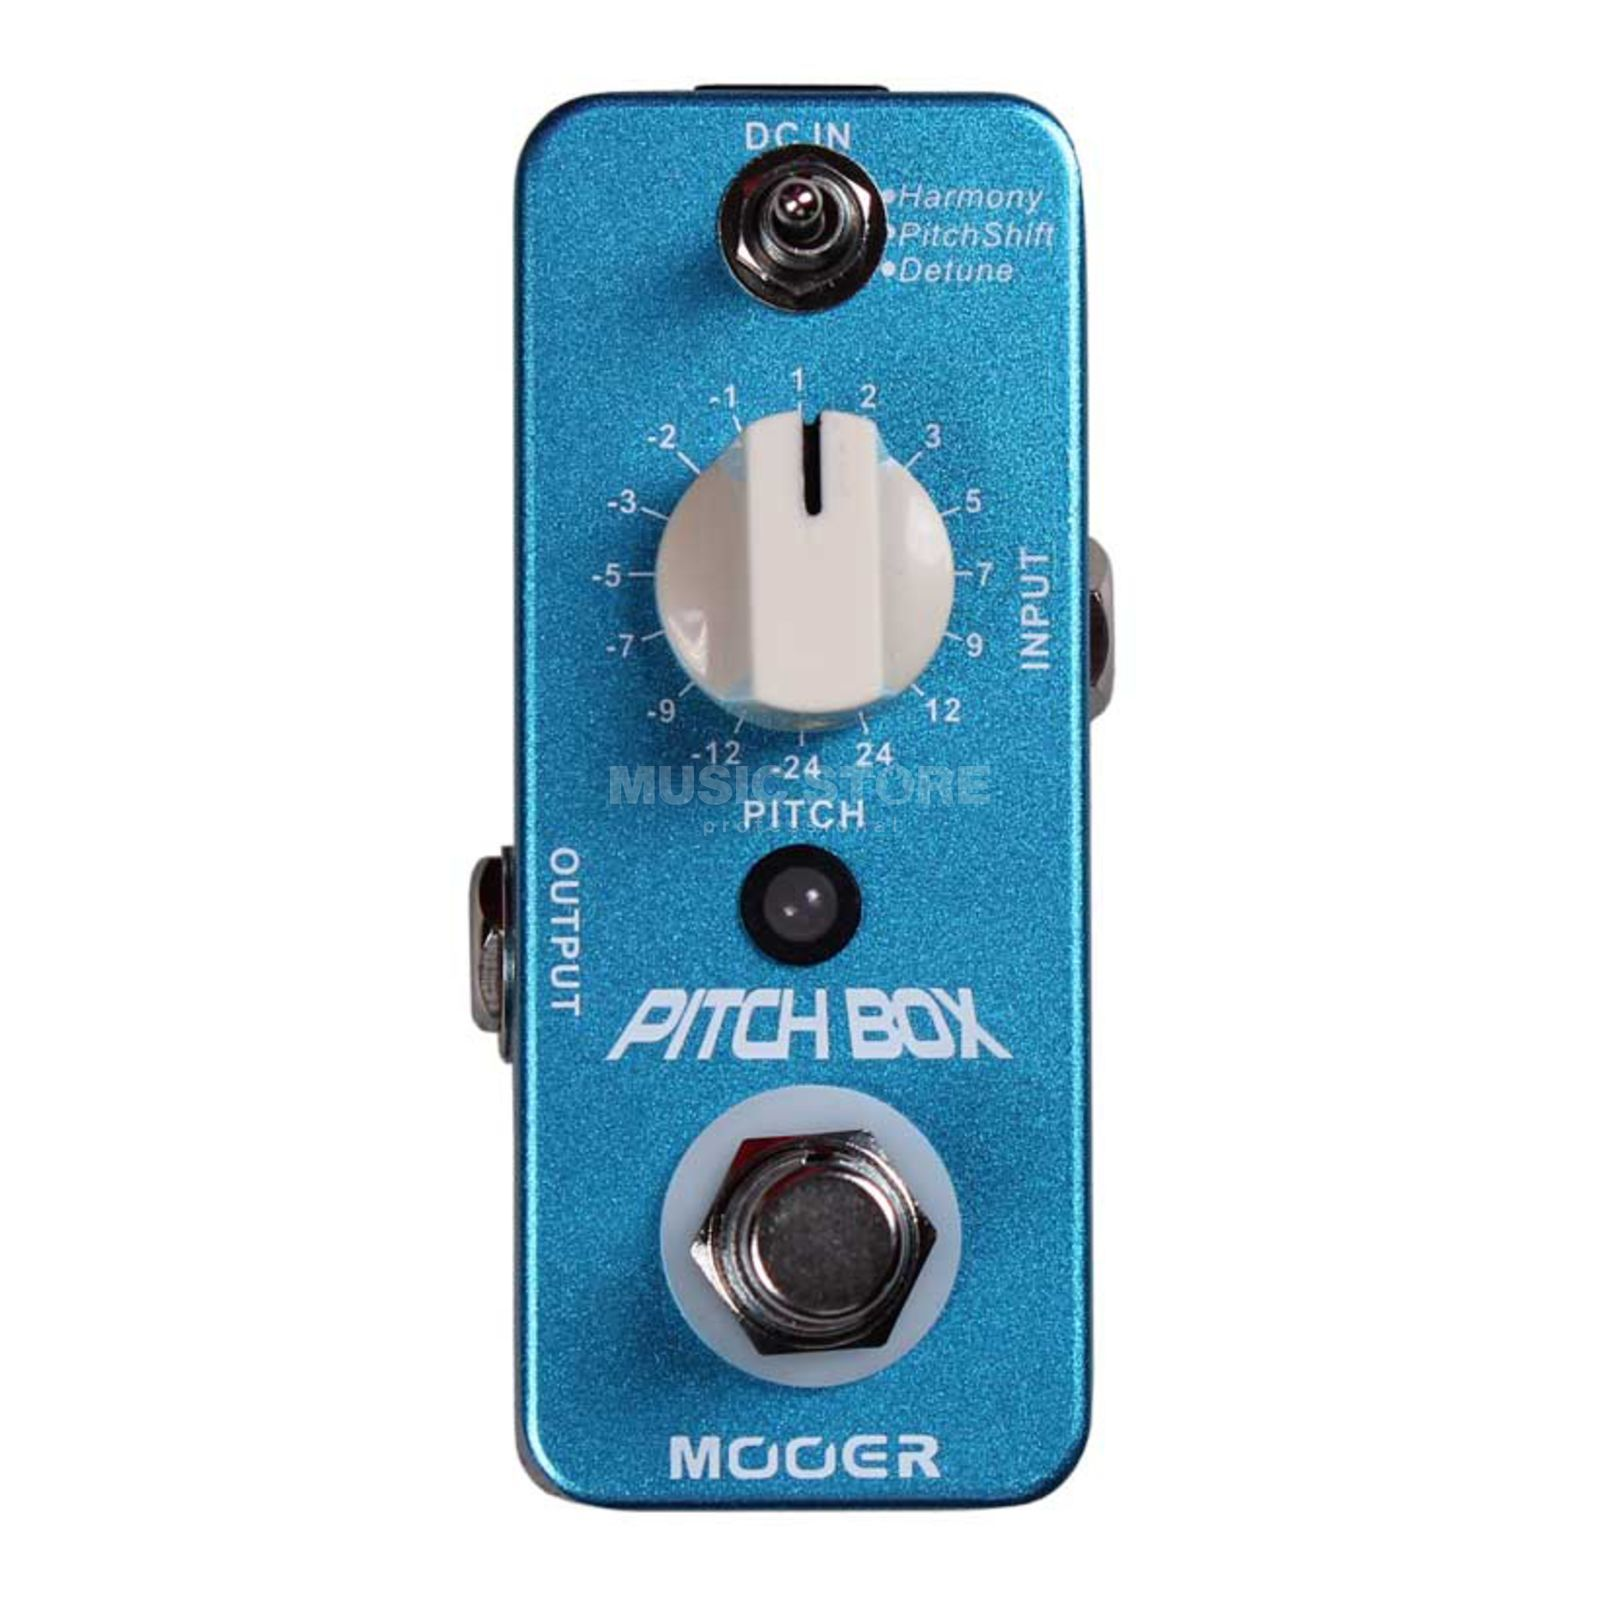 Mooer Audio Pitch Box Pitch Shifter/Detune Produktbillede